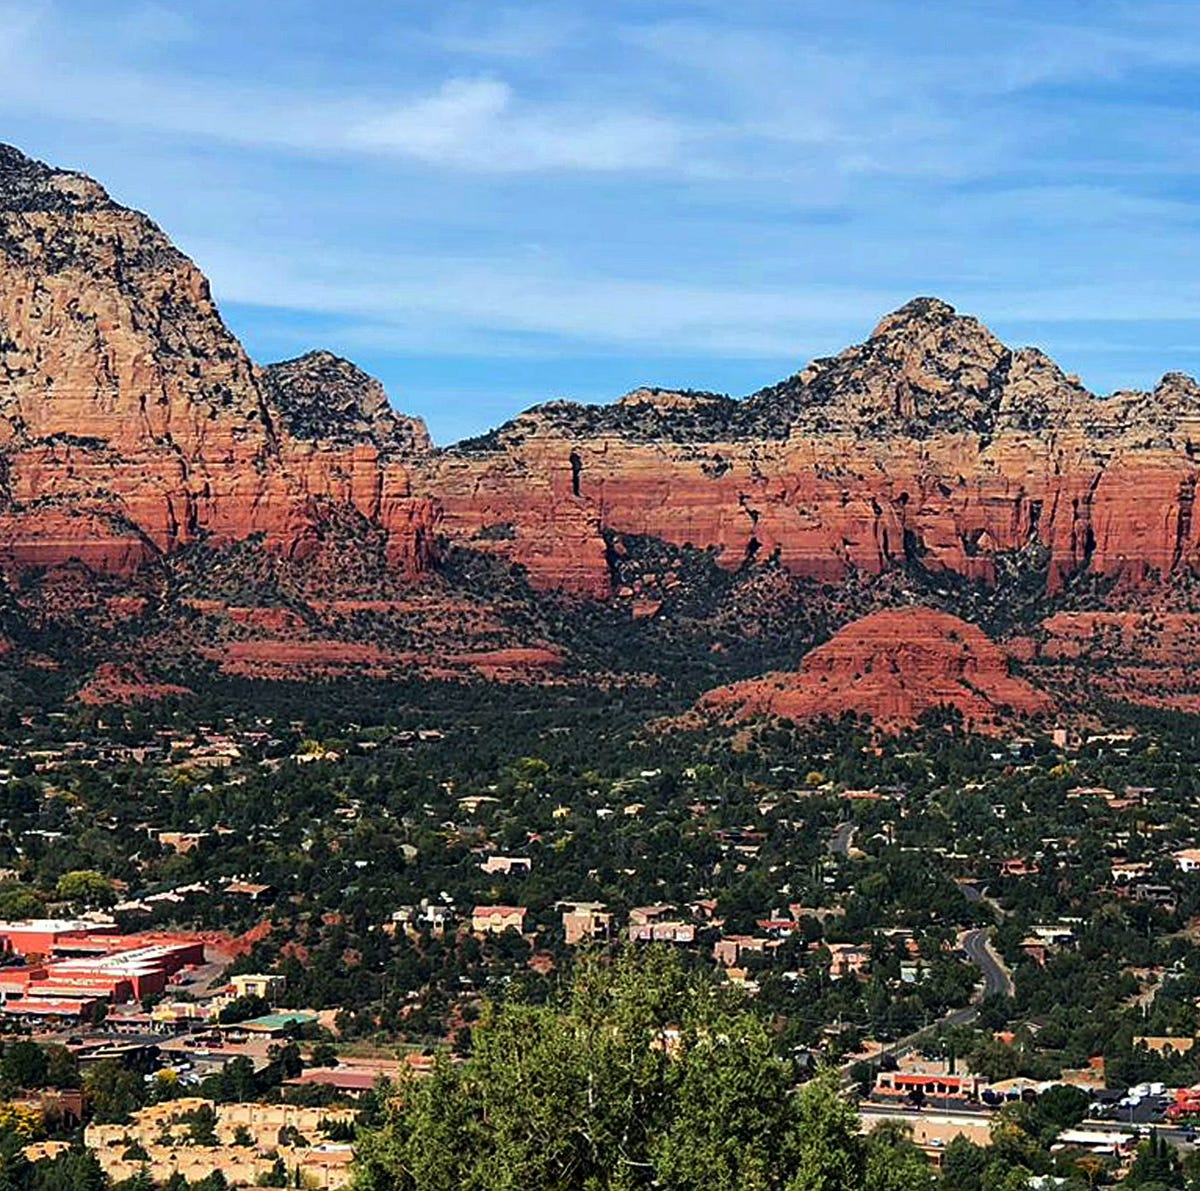 Sedona 1-day itinerary: Here are the best things to do in a short visit